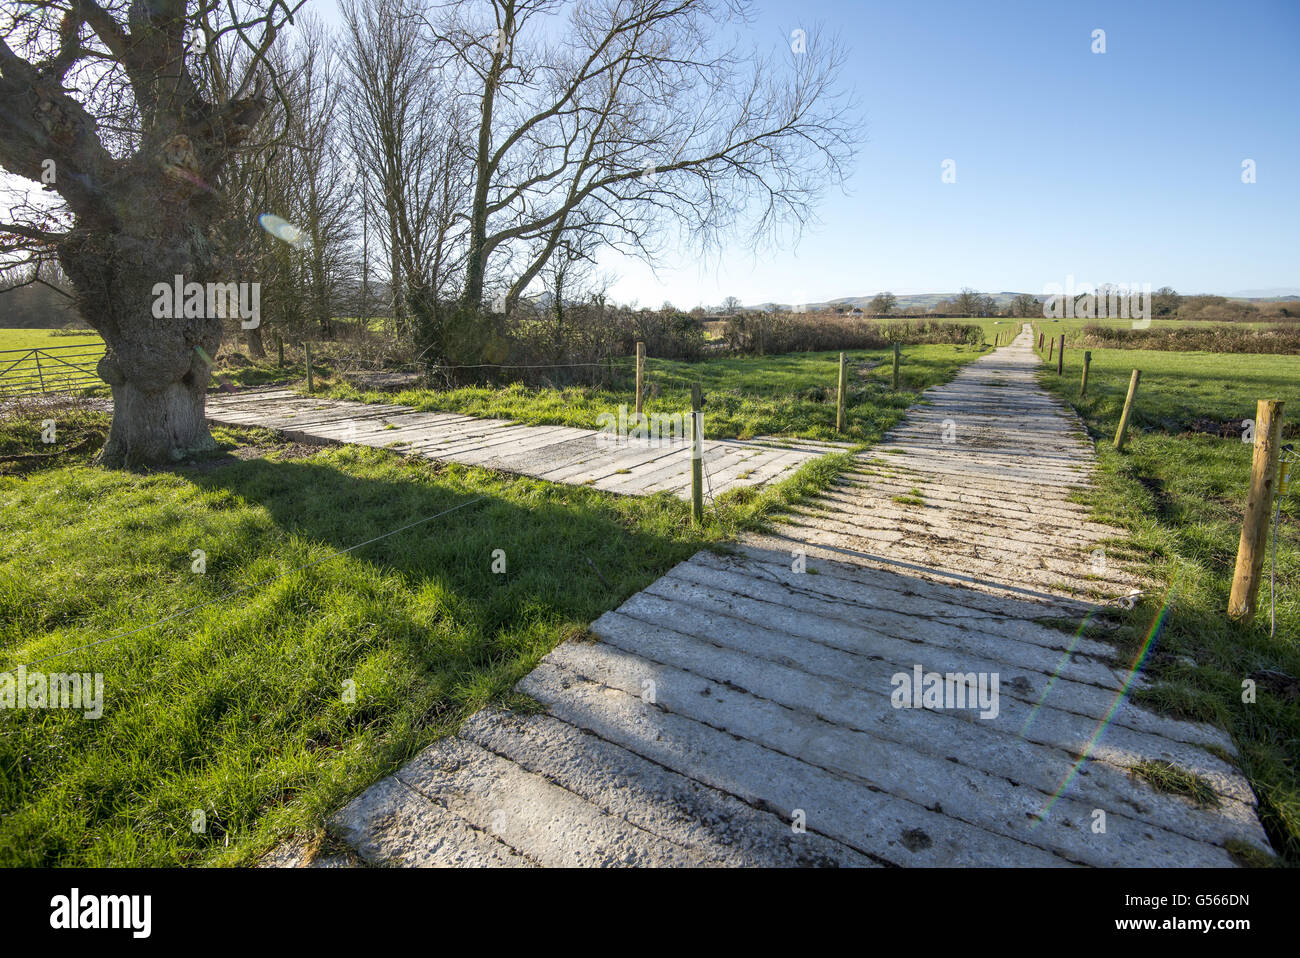 Concrete railway sleeper cow tracks in pasture on dairy farm, Shropshire, England, February - Stock Image